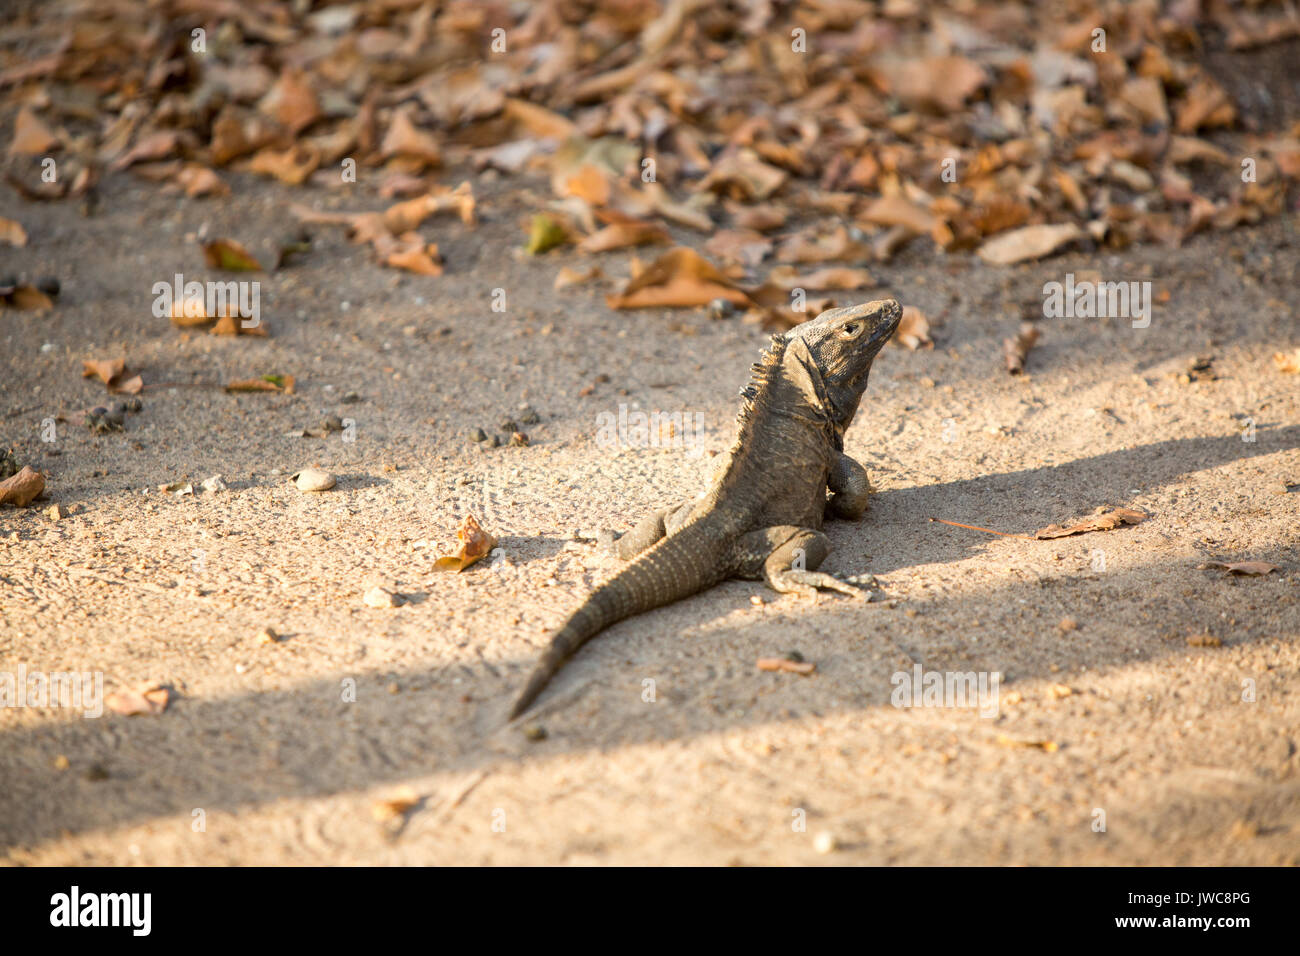 A black spiny-tail lizard walks along the sand on Iguana Island. - Stock Image